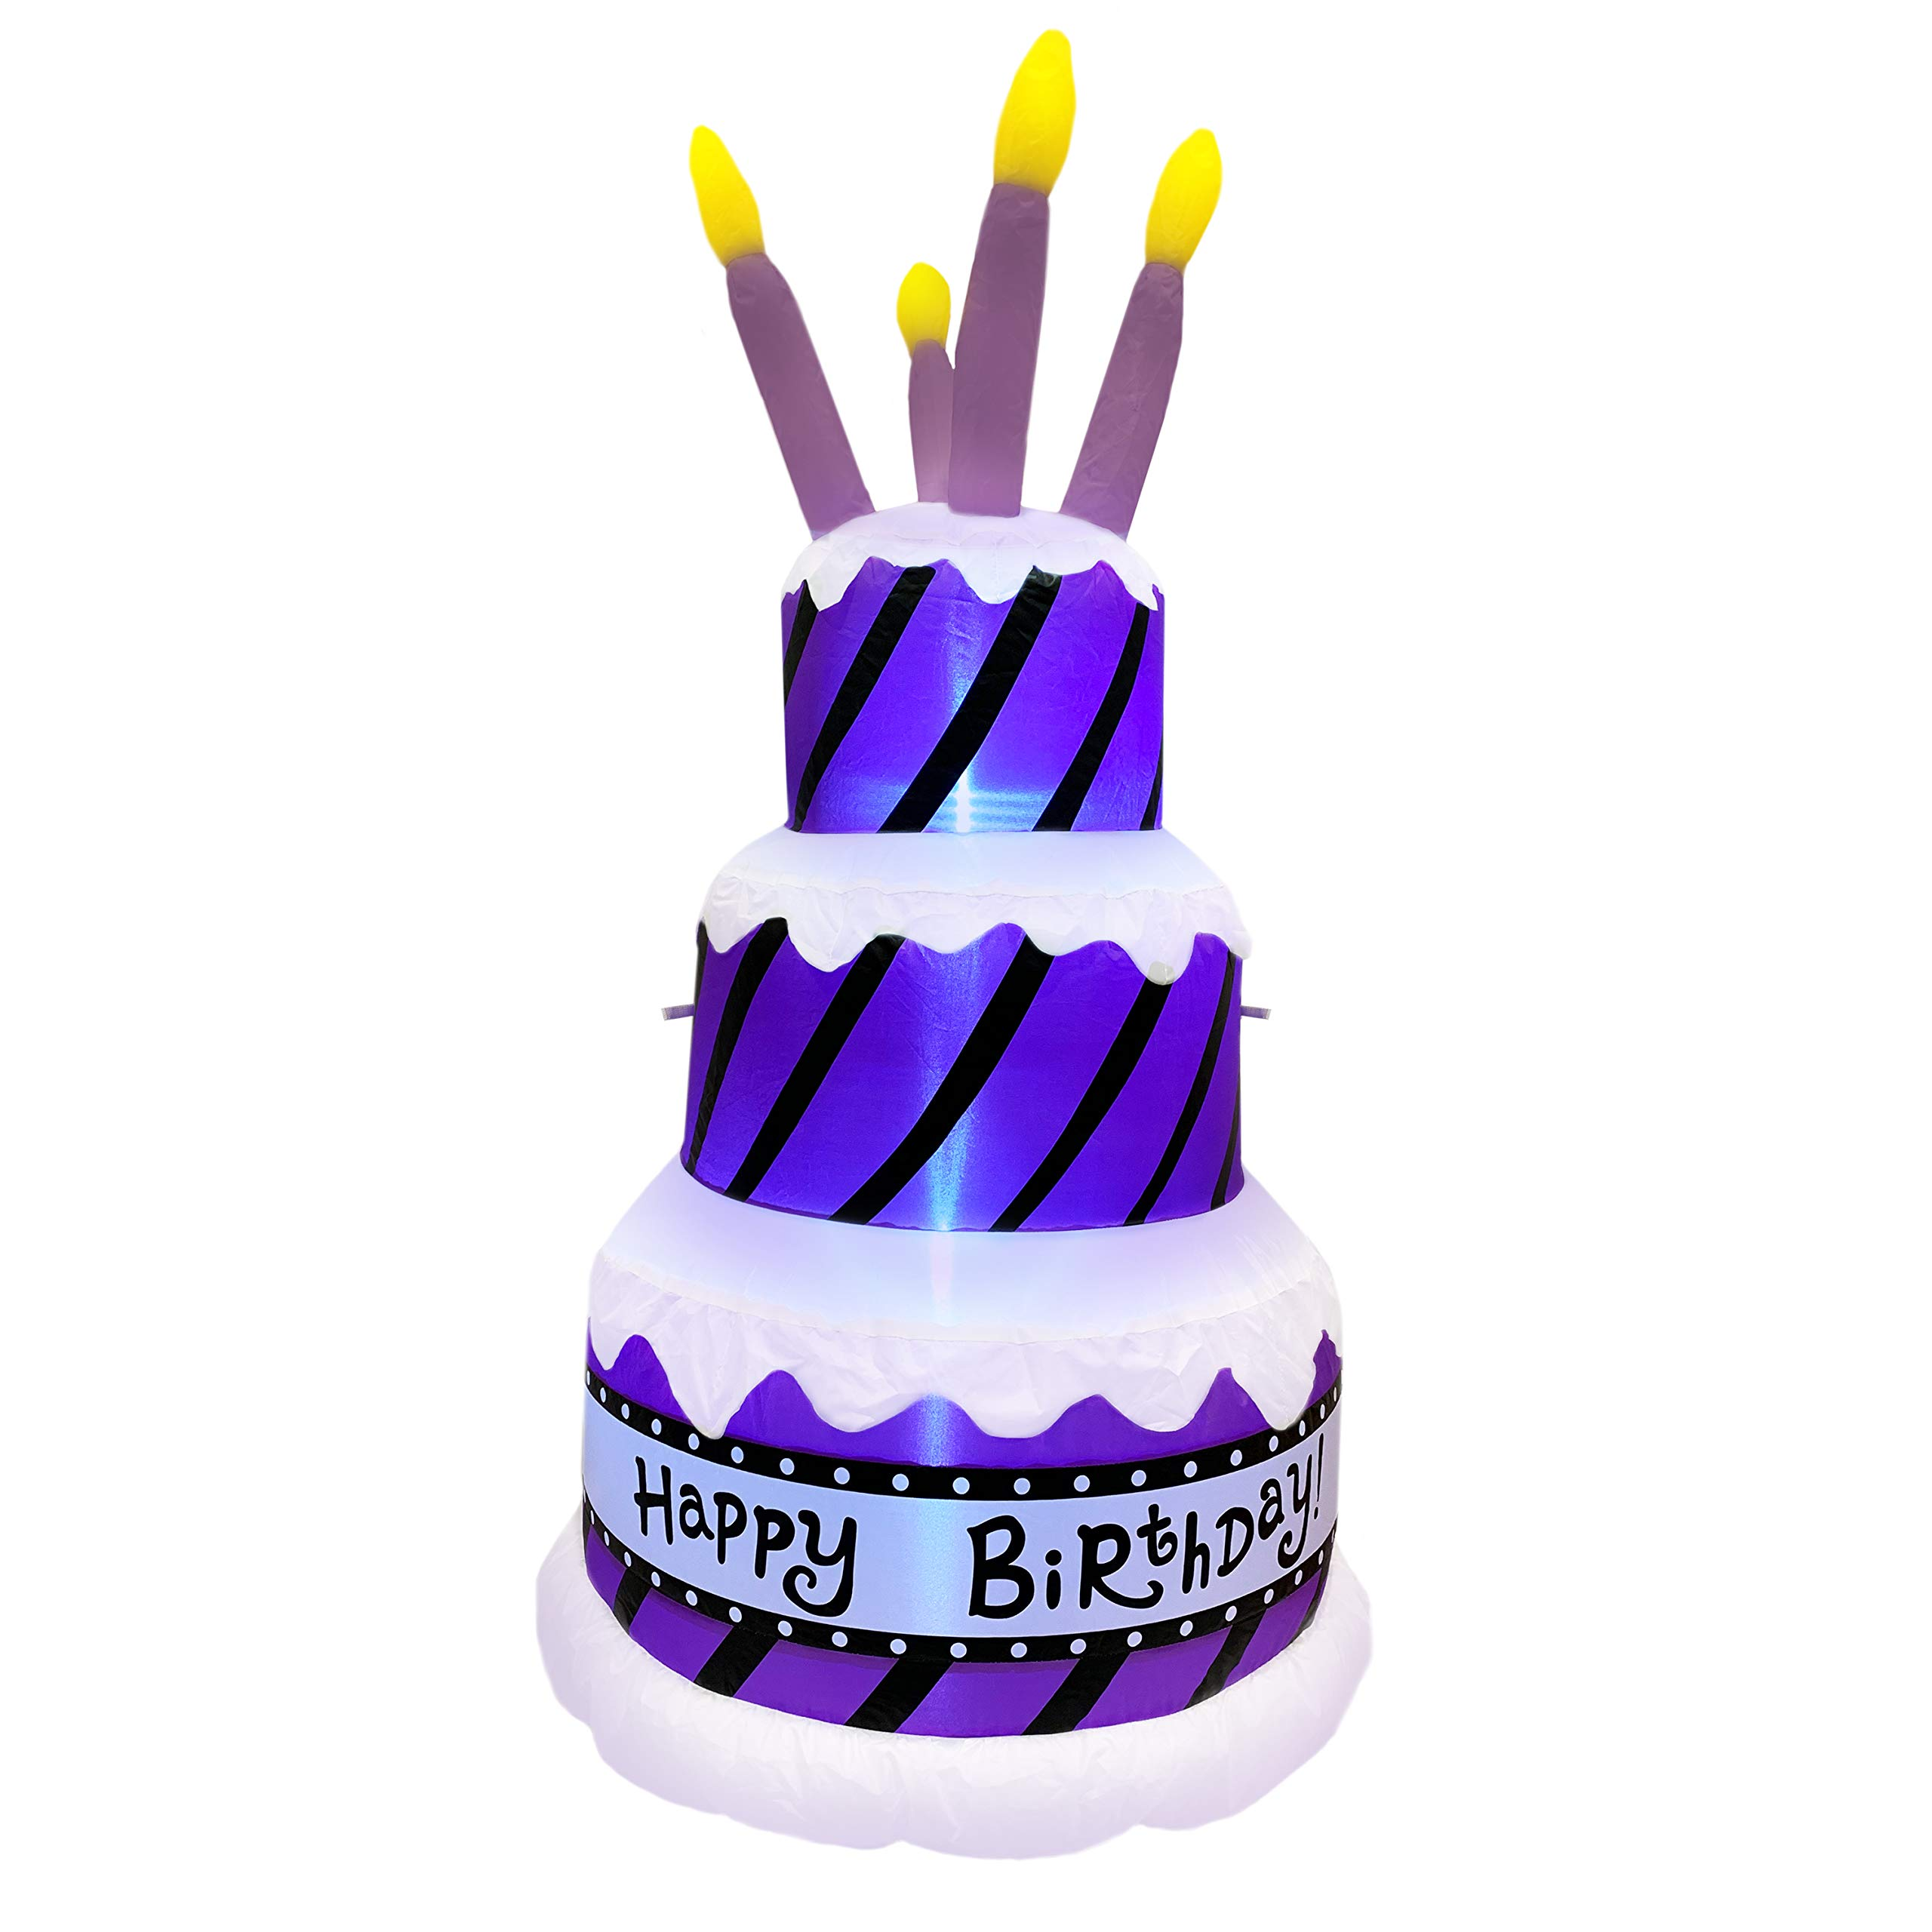 Jumbo Inflatable Happy Birthday Cake with Candles   Extra Large Birthday Party Decoration Lights Up and Inflates in Moments   For Indoors or Outdoors (Tie Down and Stakes Included for Outdoor Use)